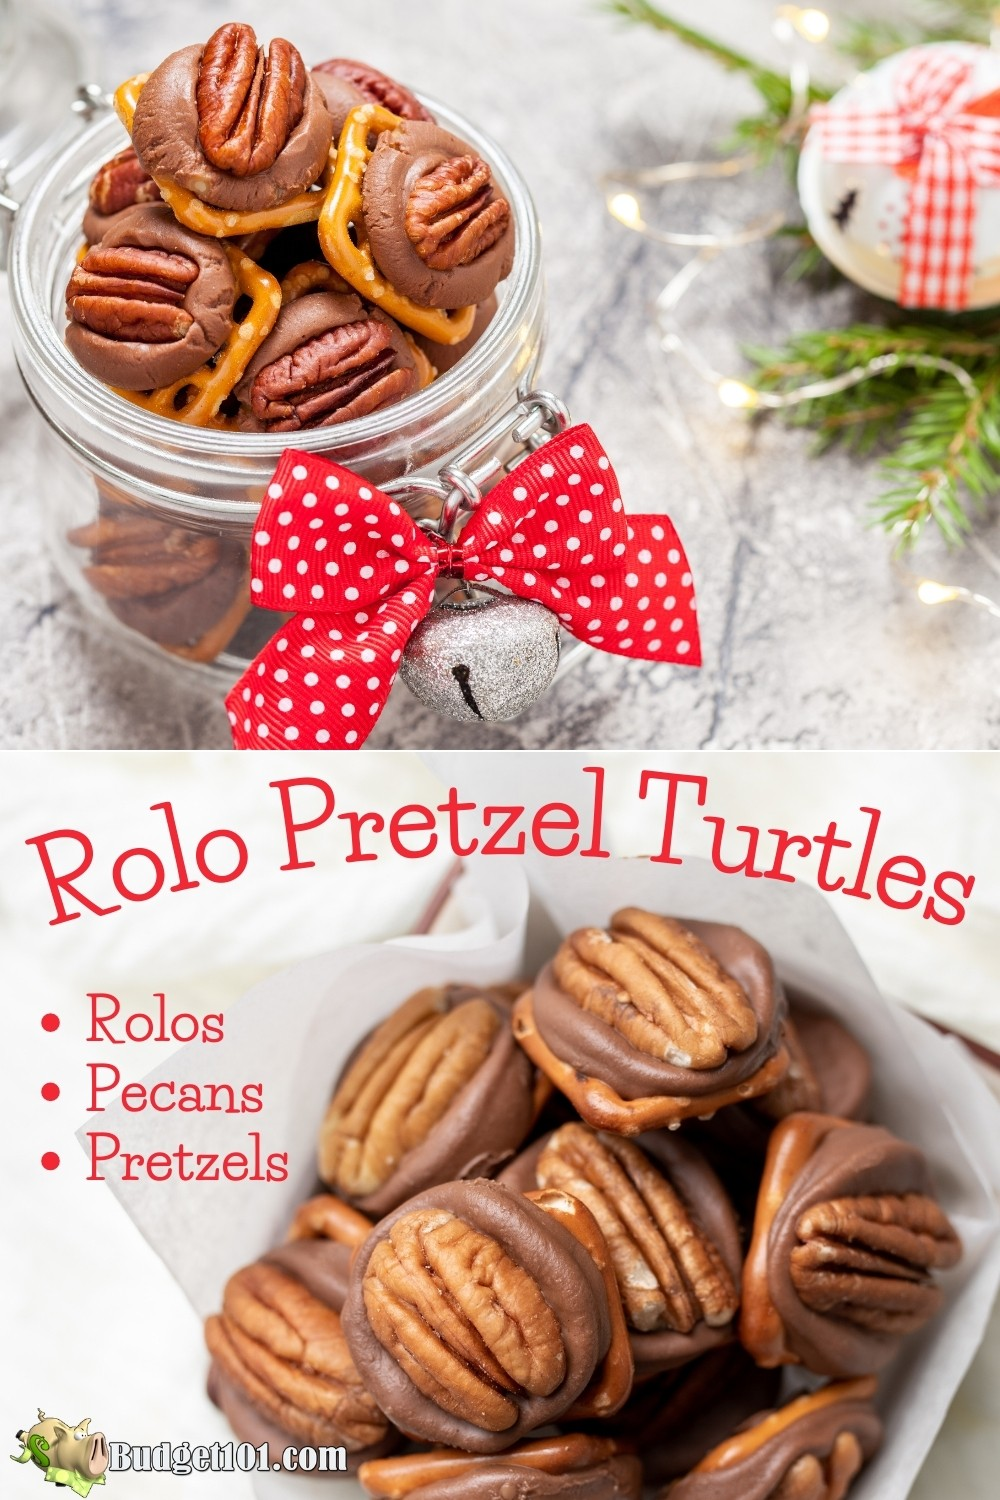 Rolo Pretzel Turtles aka Rolo Pretzel Bites are just 3 ingredients, rolos, pretzels and pecan halves. They take less than 10 minutes to make #Christmas #Thanksgiving #Holidays #giftideas #munchies #Budget101